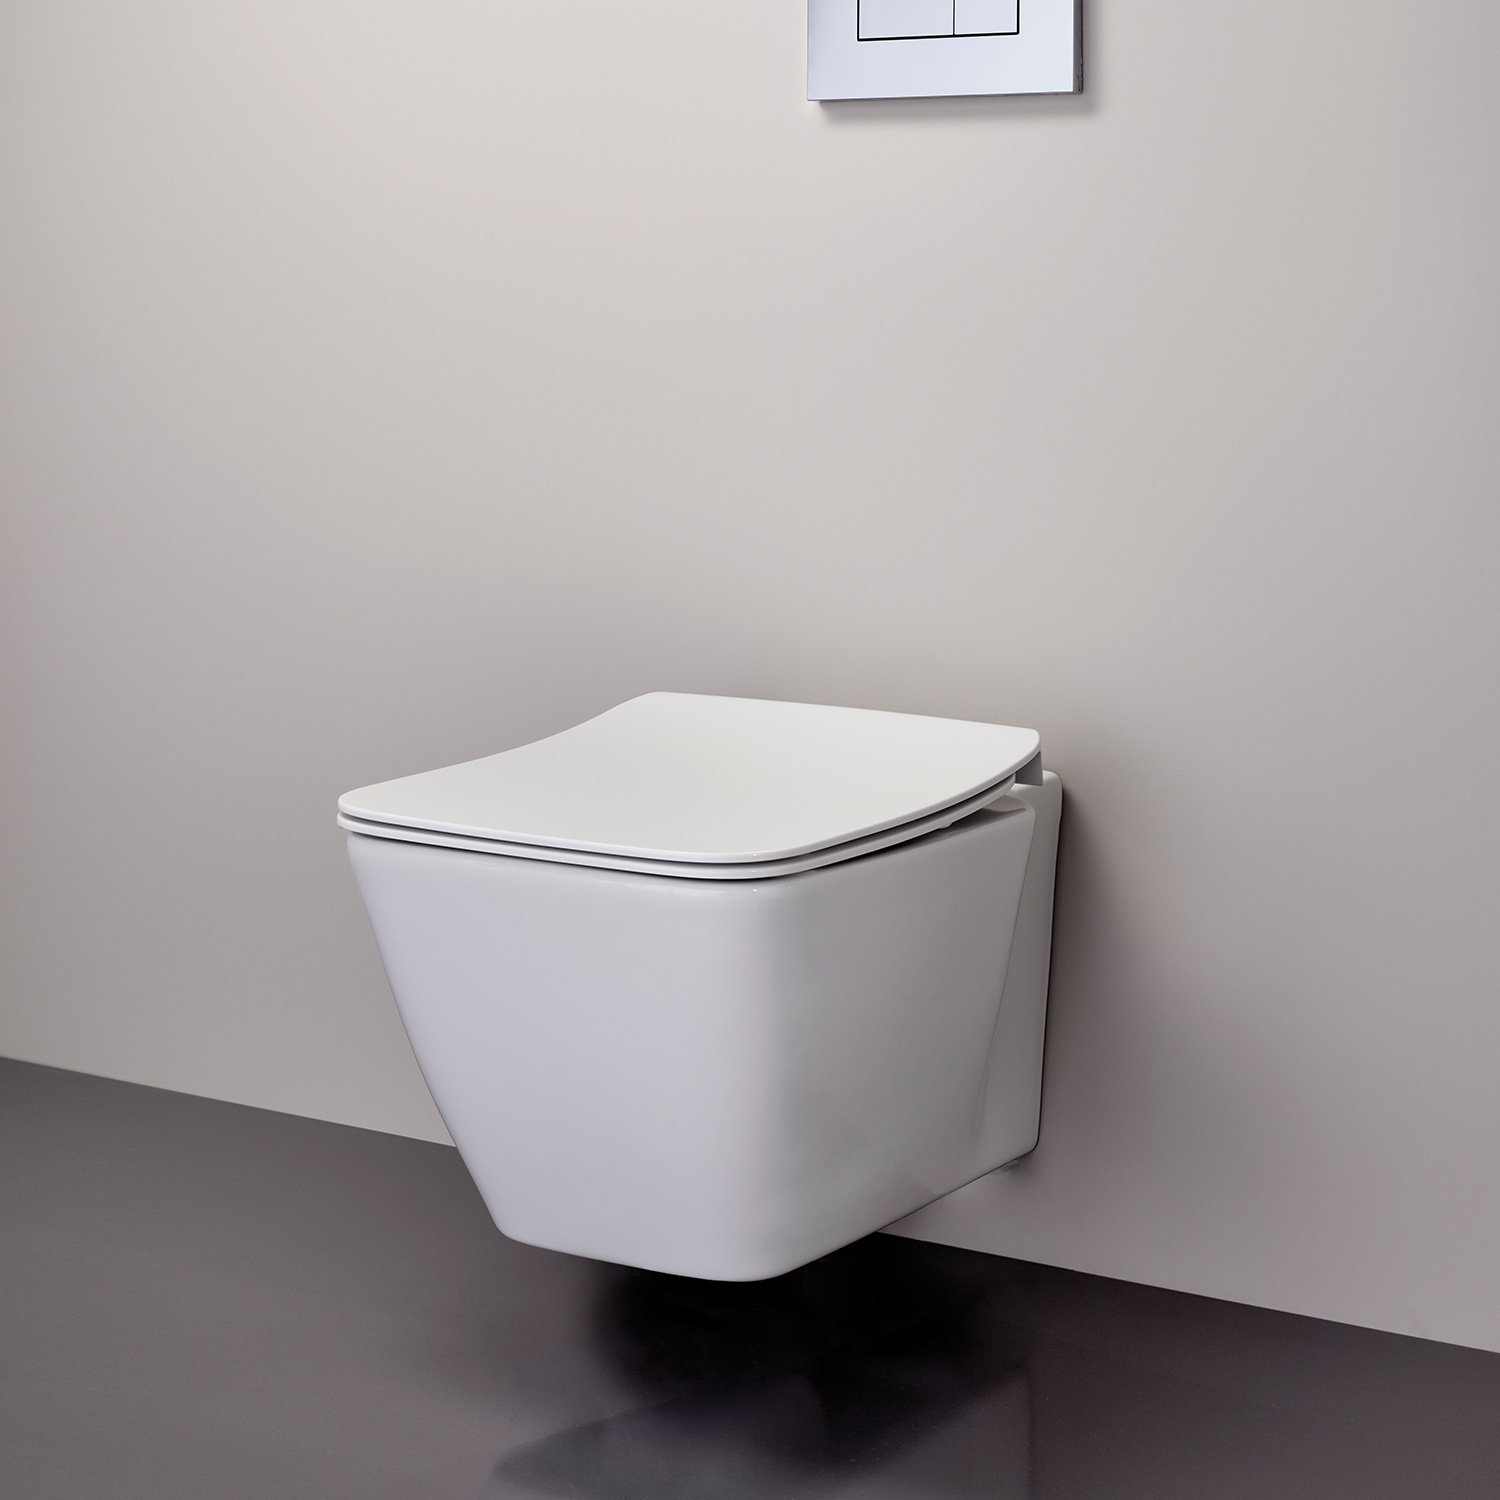 sottini fusaro wall mounted wc pan with horizontal outlet and aquablade technology U856401 addi 1 8c5ba6ba 40ea 4305 8326 c4dd0ab86b55